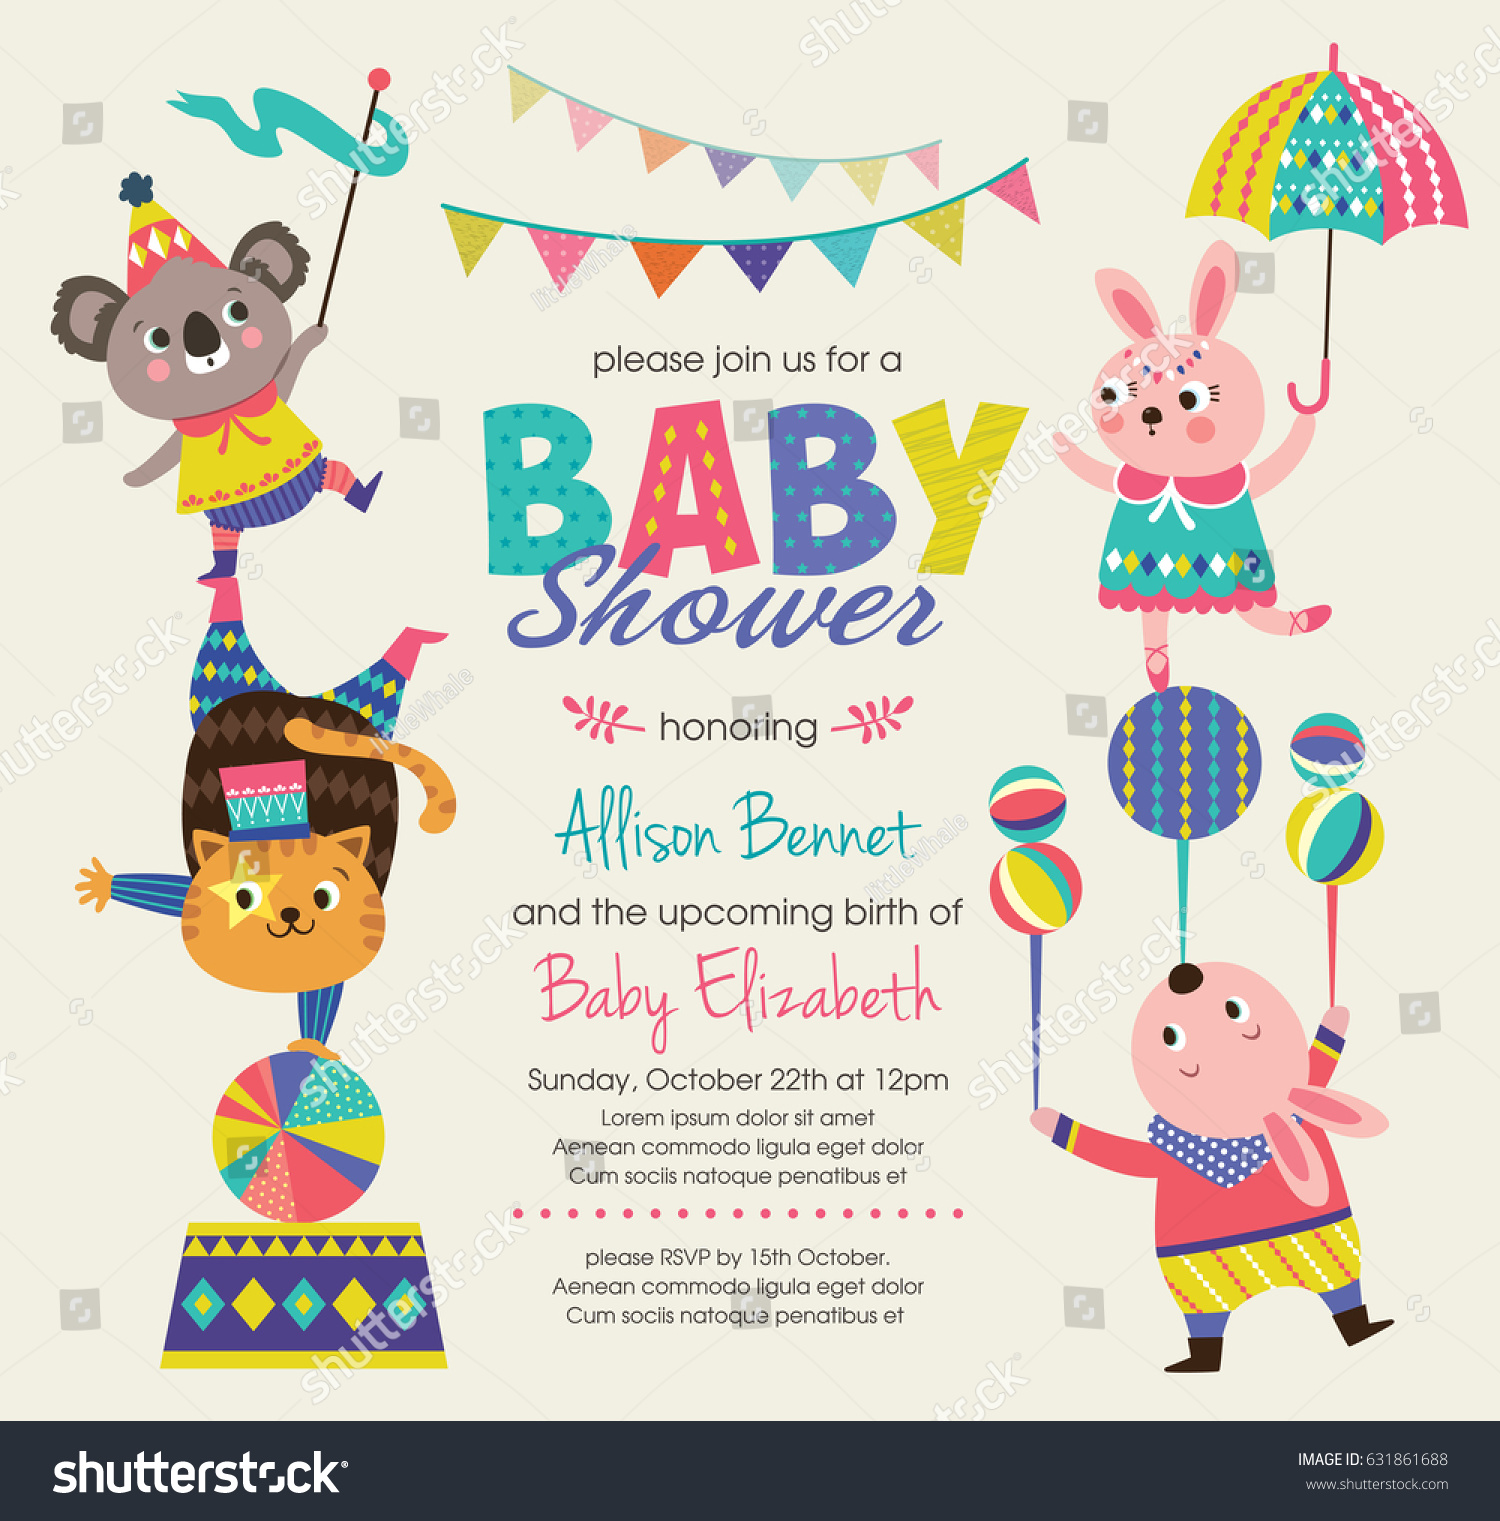 Baby Shower Invitation Card Circus Theme Stock Vector 631861688 ...